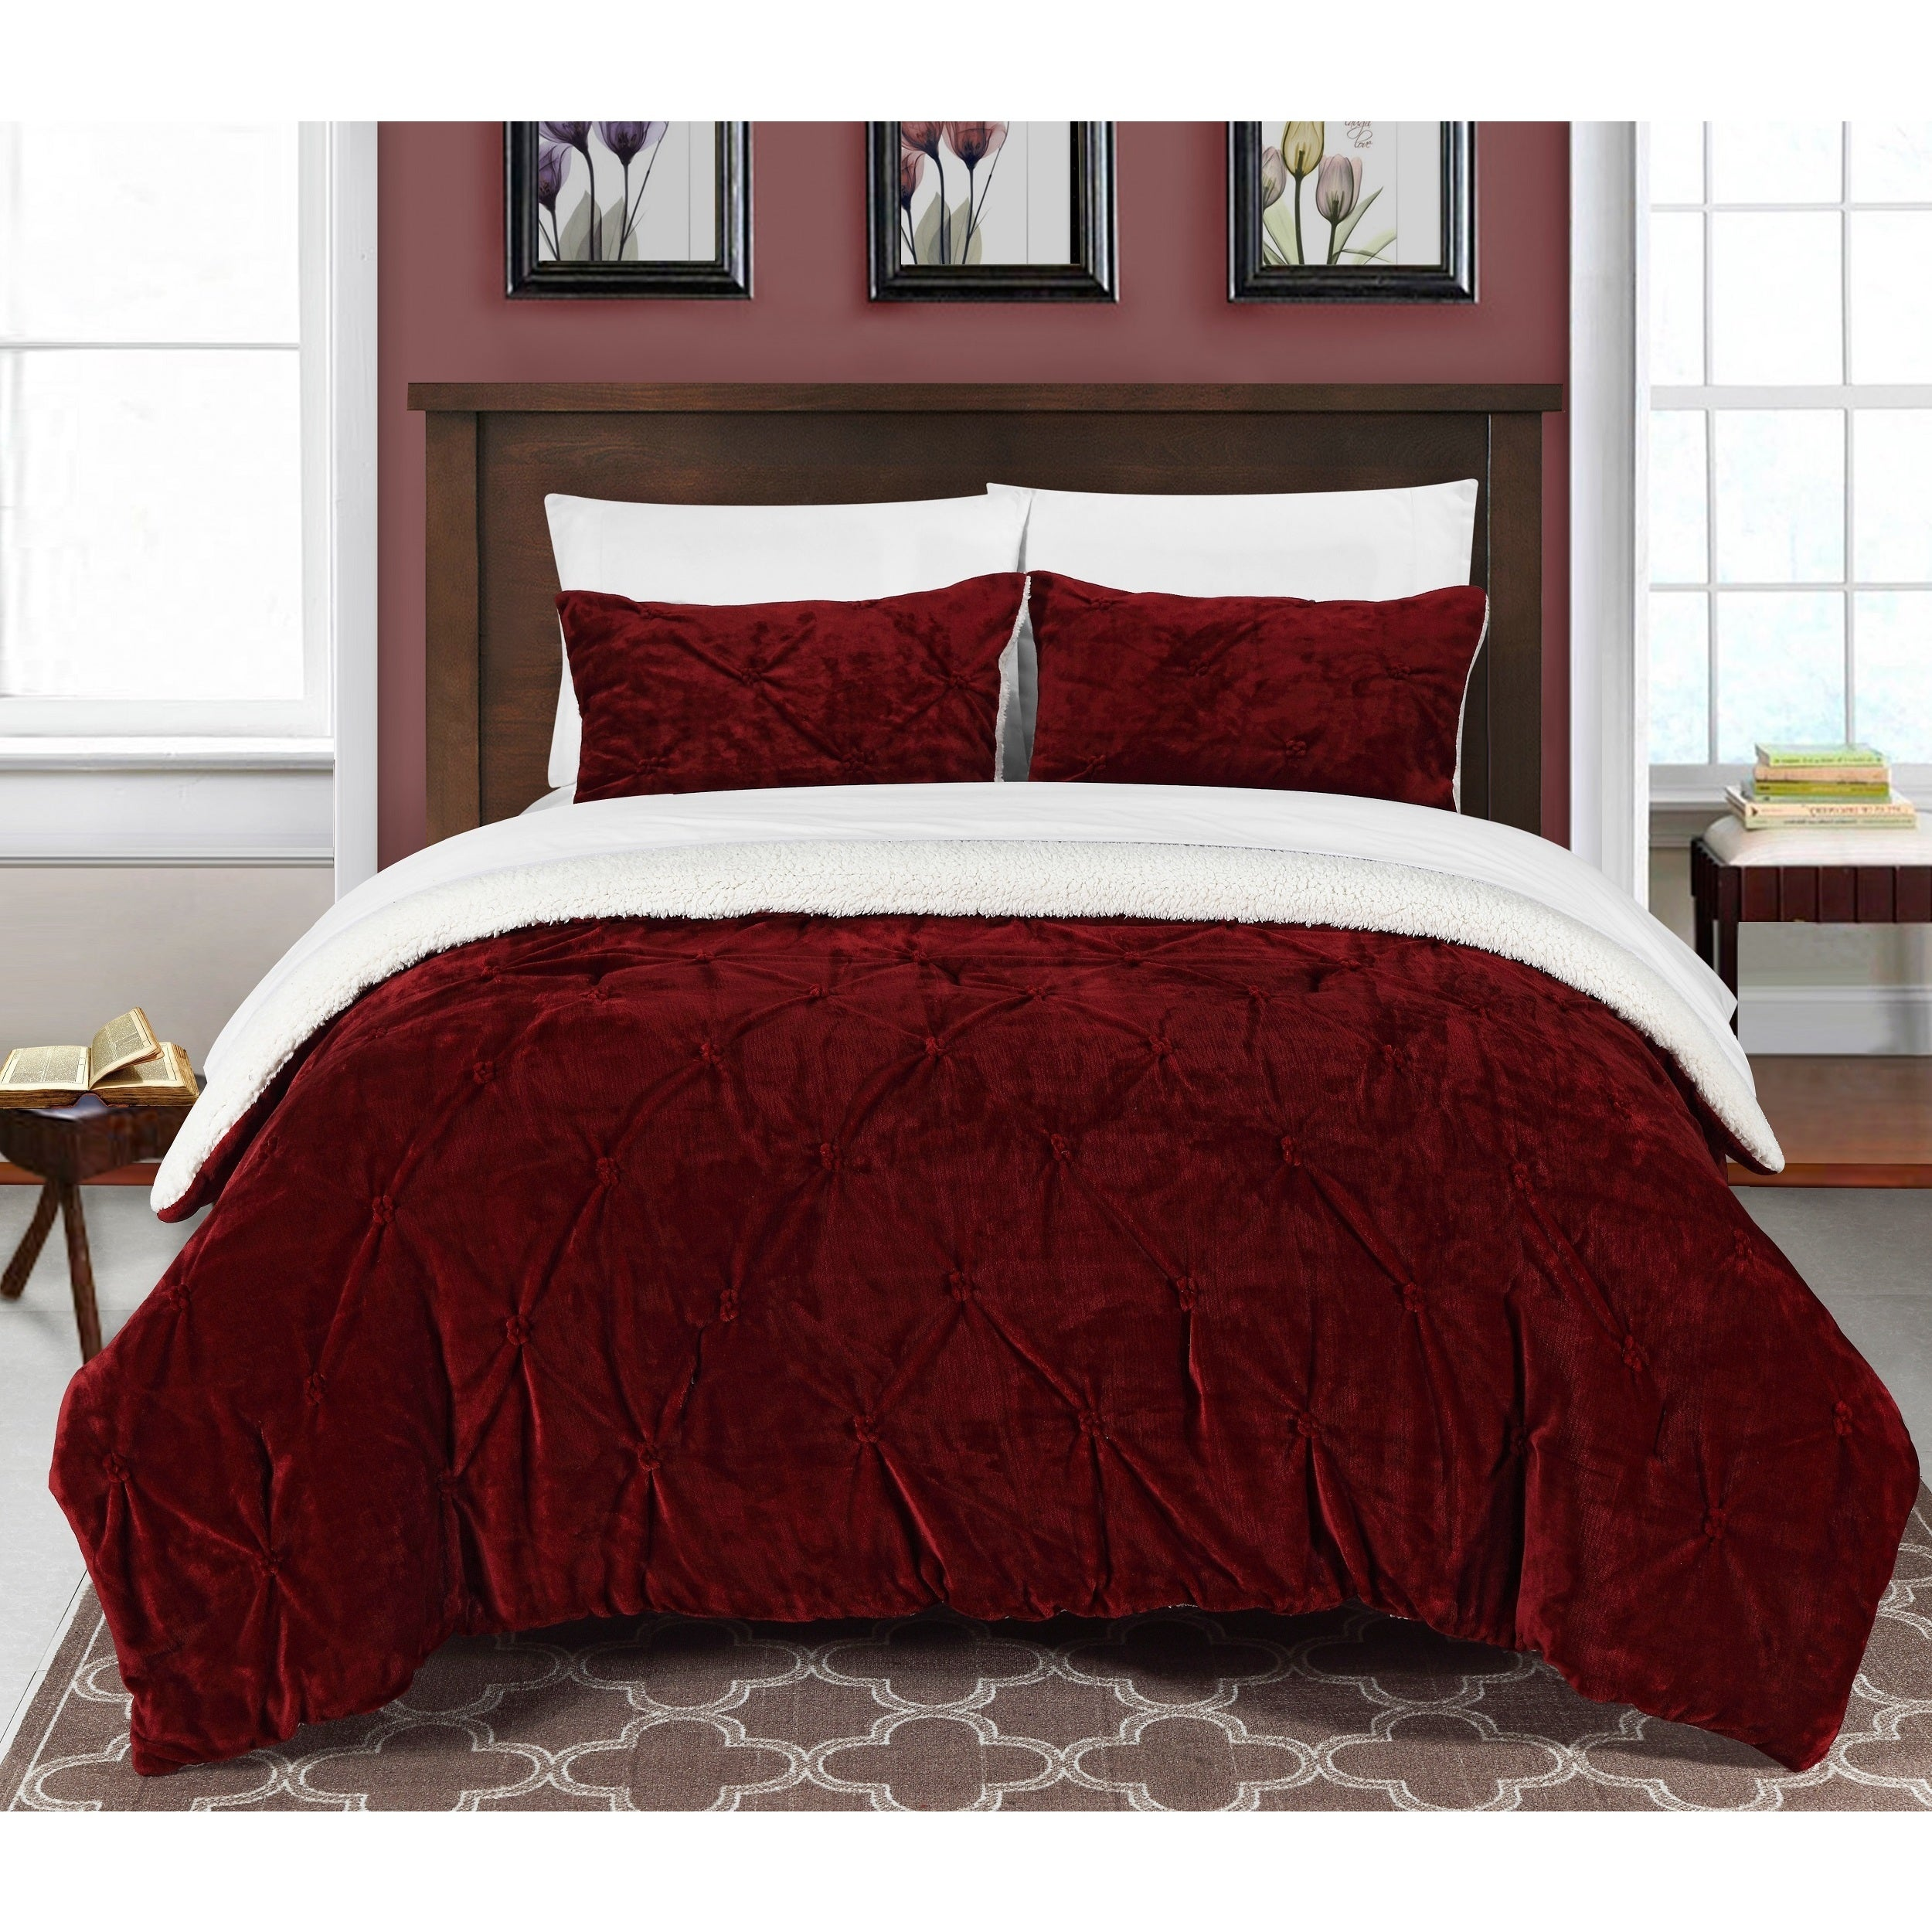 Shop Black Friday Deals On Chic Home Chiara Pinch Pleated Ruffled And Pintuck Sherpa Lined Burgundy 7 Piece Bed In A Bag Set On Sale Overstock 10756299 Queen